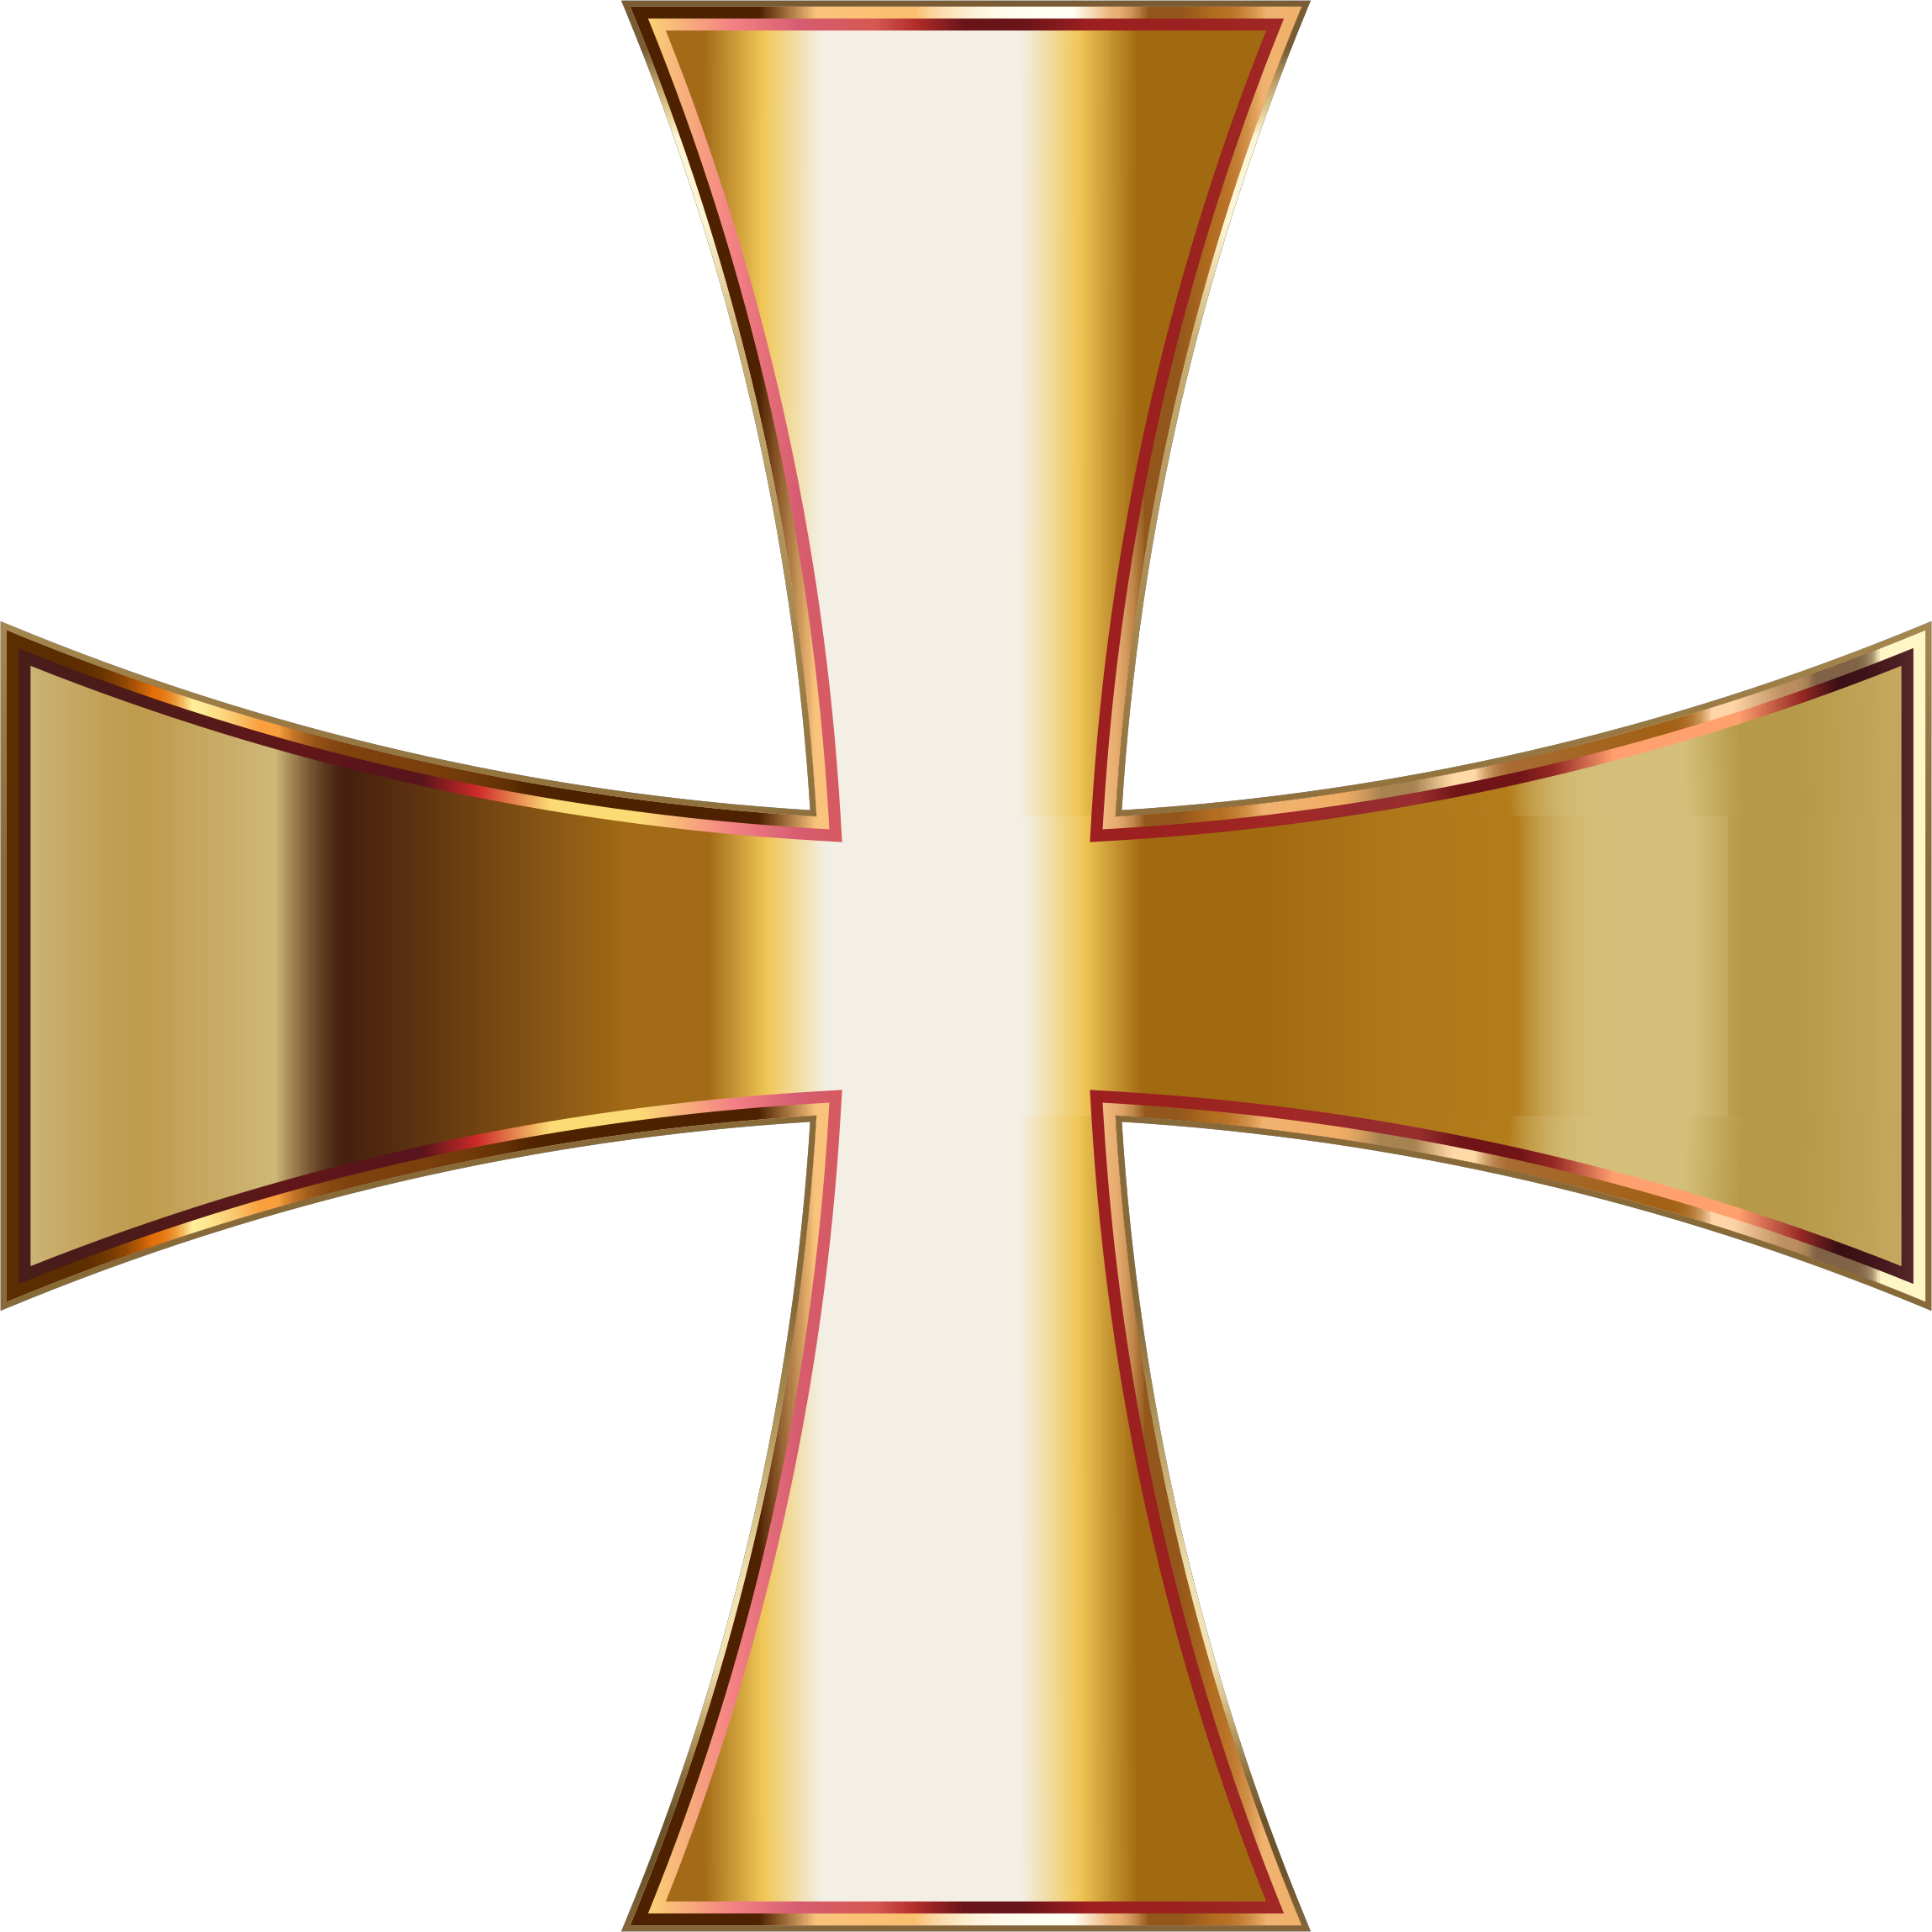 Gold Maltese Cross No Background by GDJ